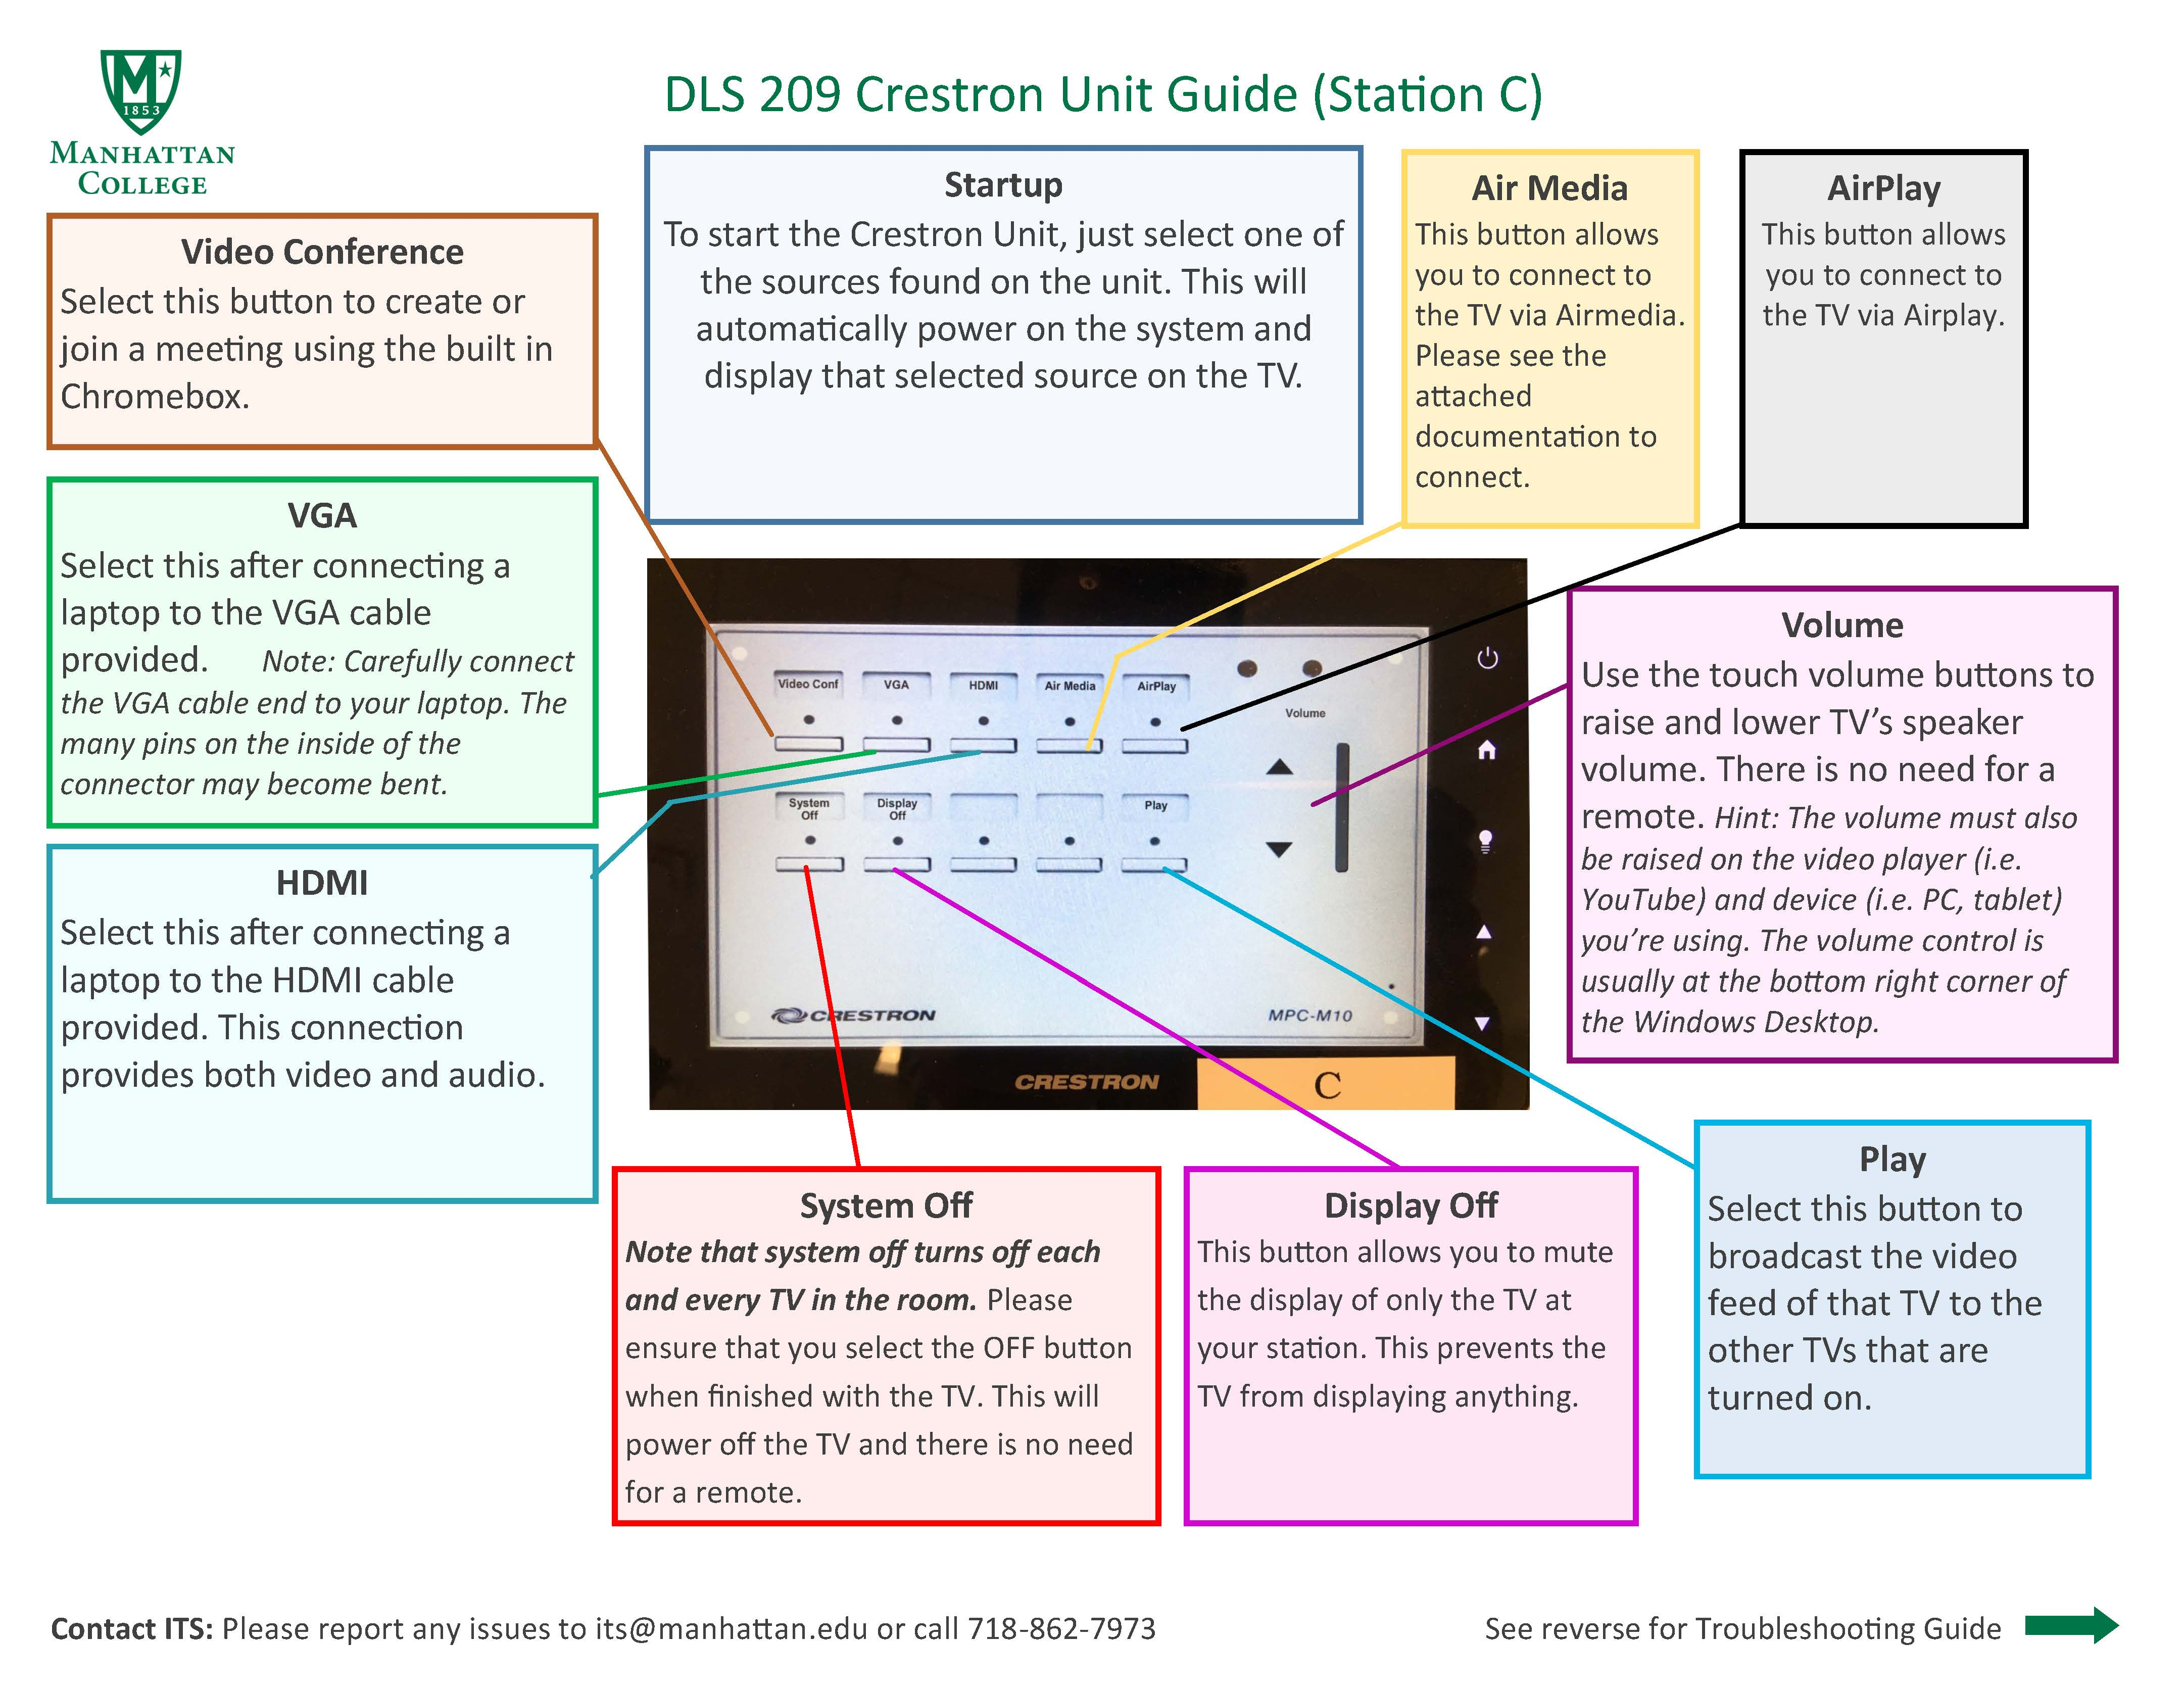 image depicting the podium guide for the dls 209 student station c couch area